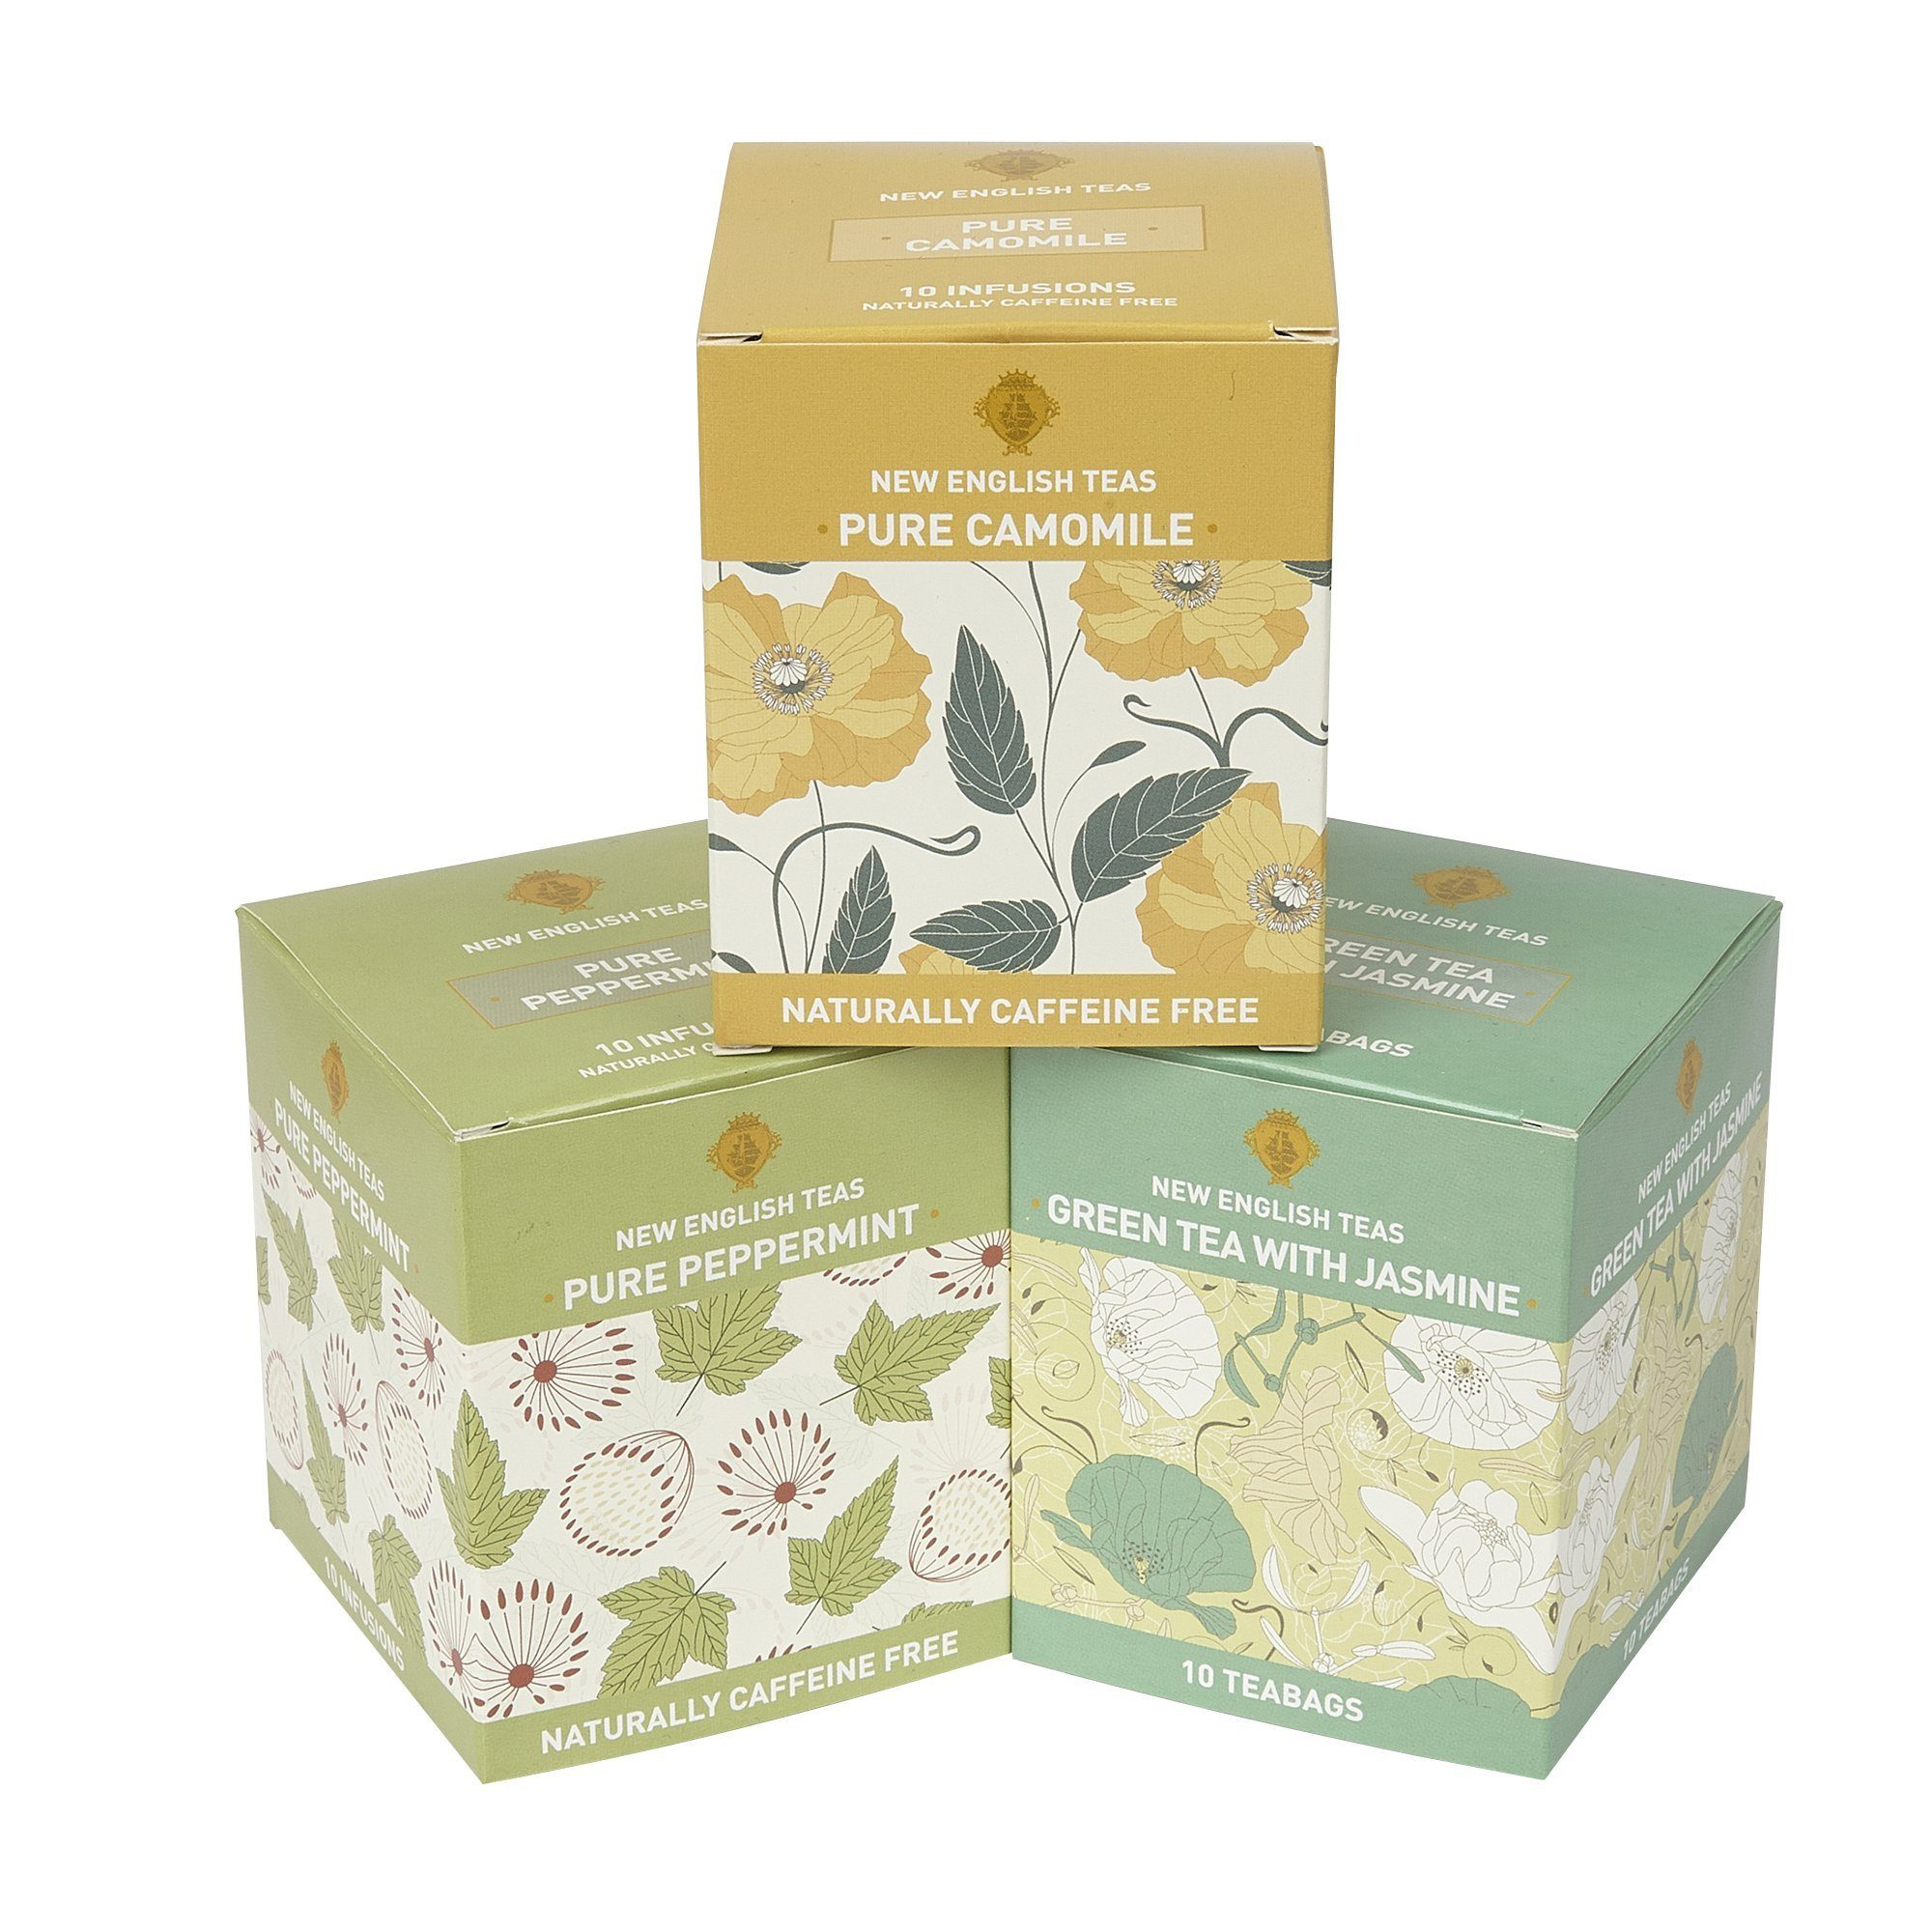 Wellbeing Tea Selection Detox Me 30 Teabags Green Tea, Herbal Tea New English Teas